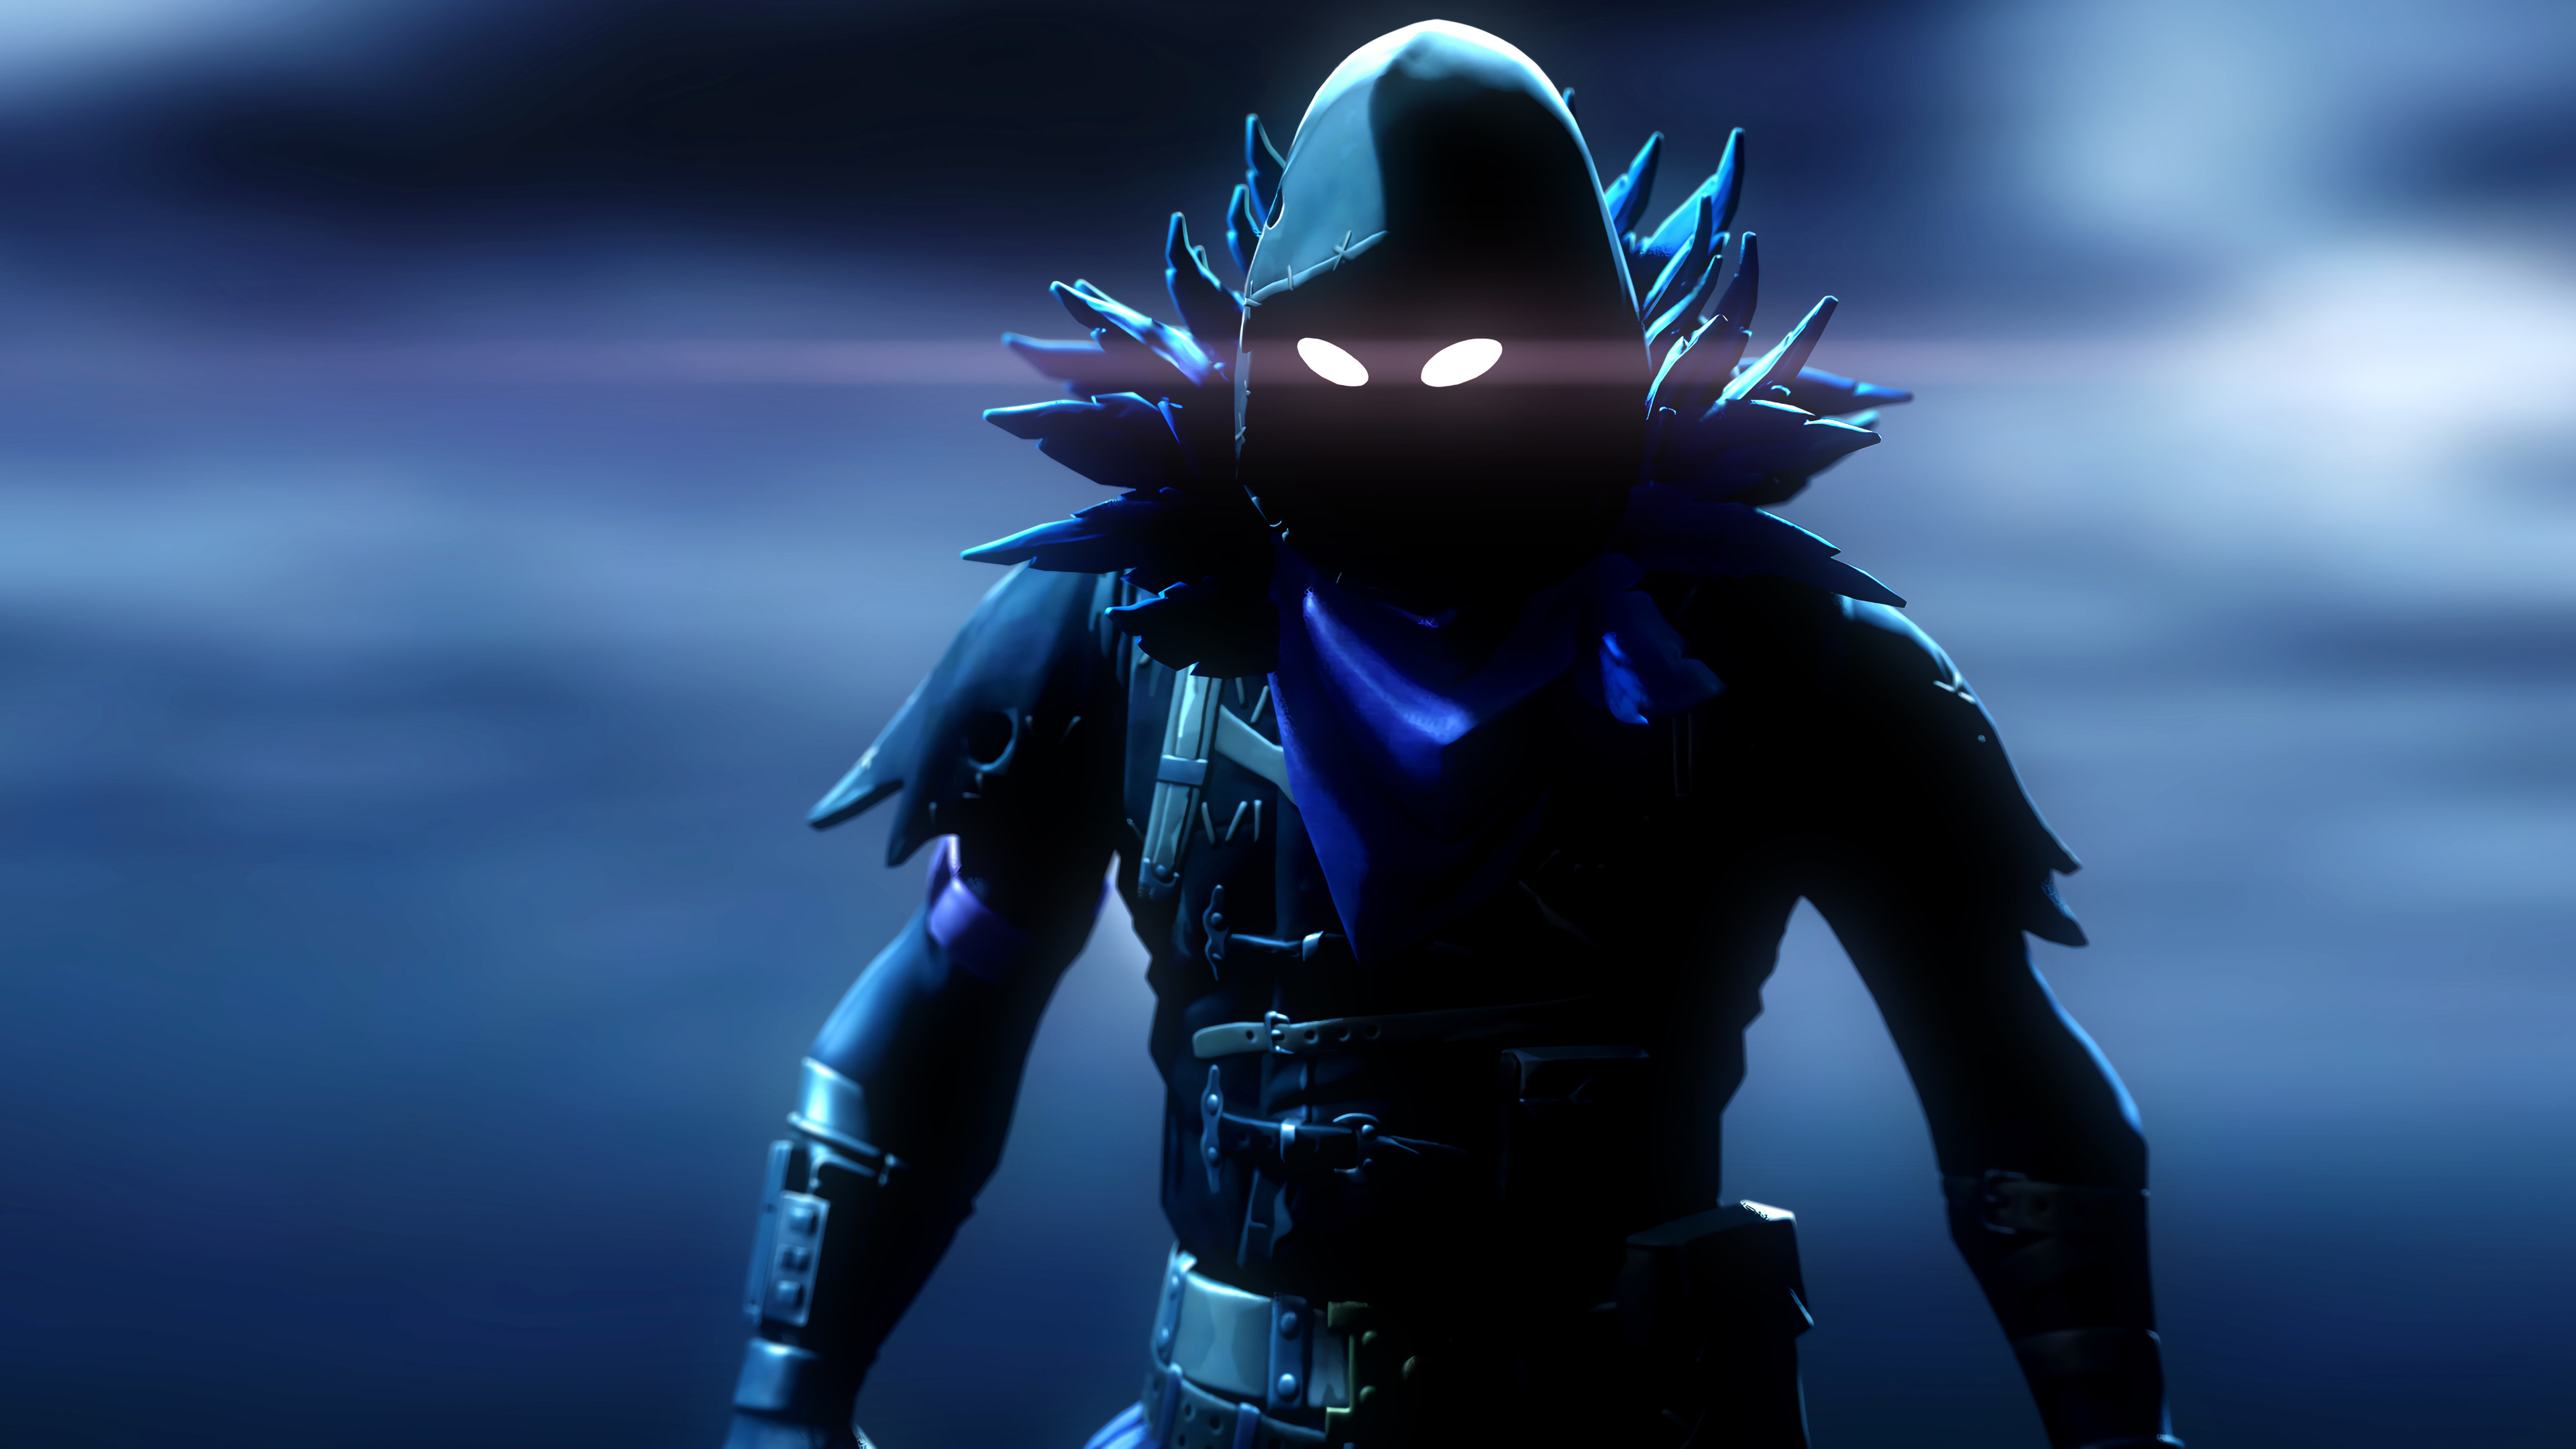 Wallpaper 4k Raven Fortnite 4K 2018 games wallpapers, 4k-wallpapers ...